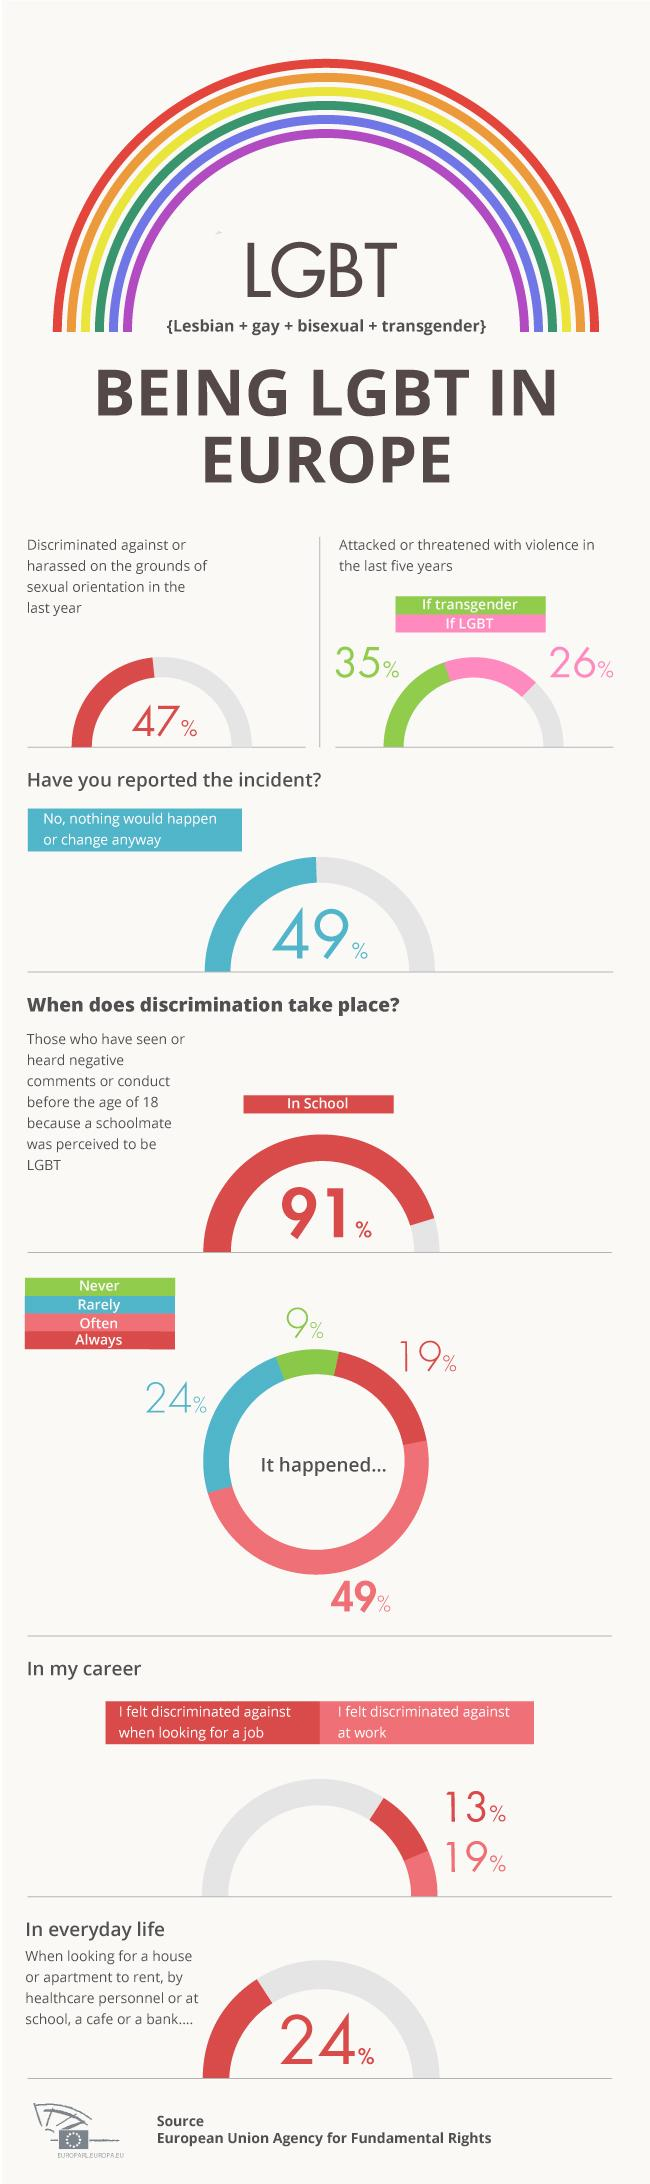 Fighting Against Violence in the LGBT Community Essay